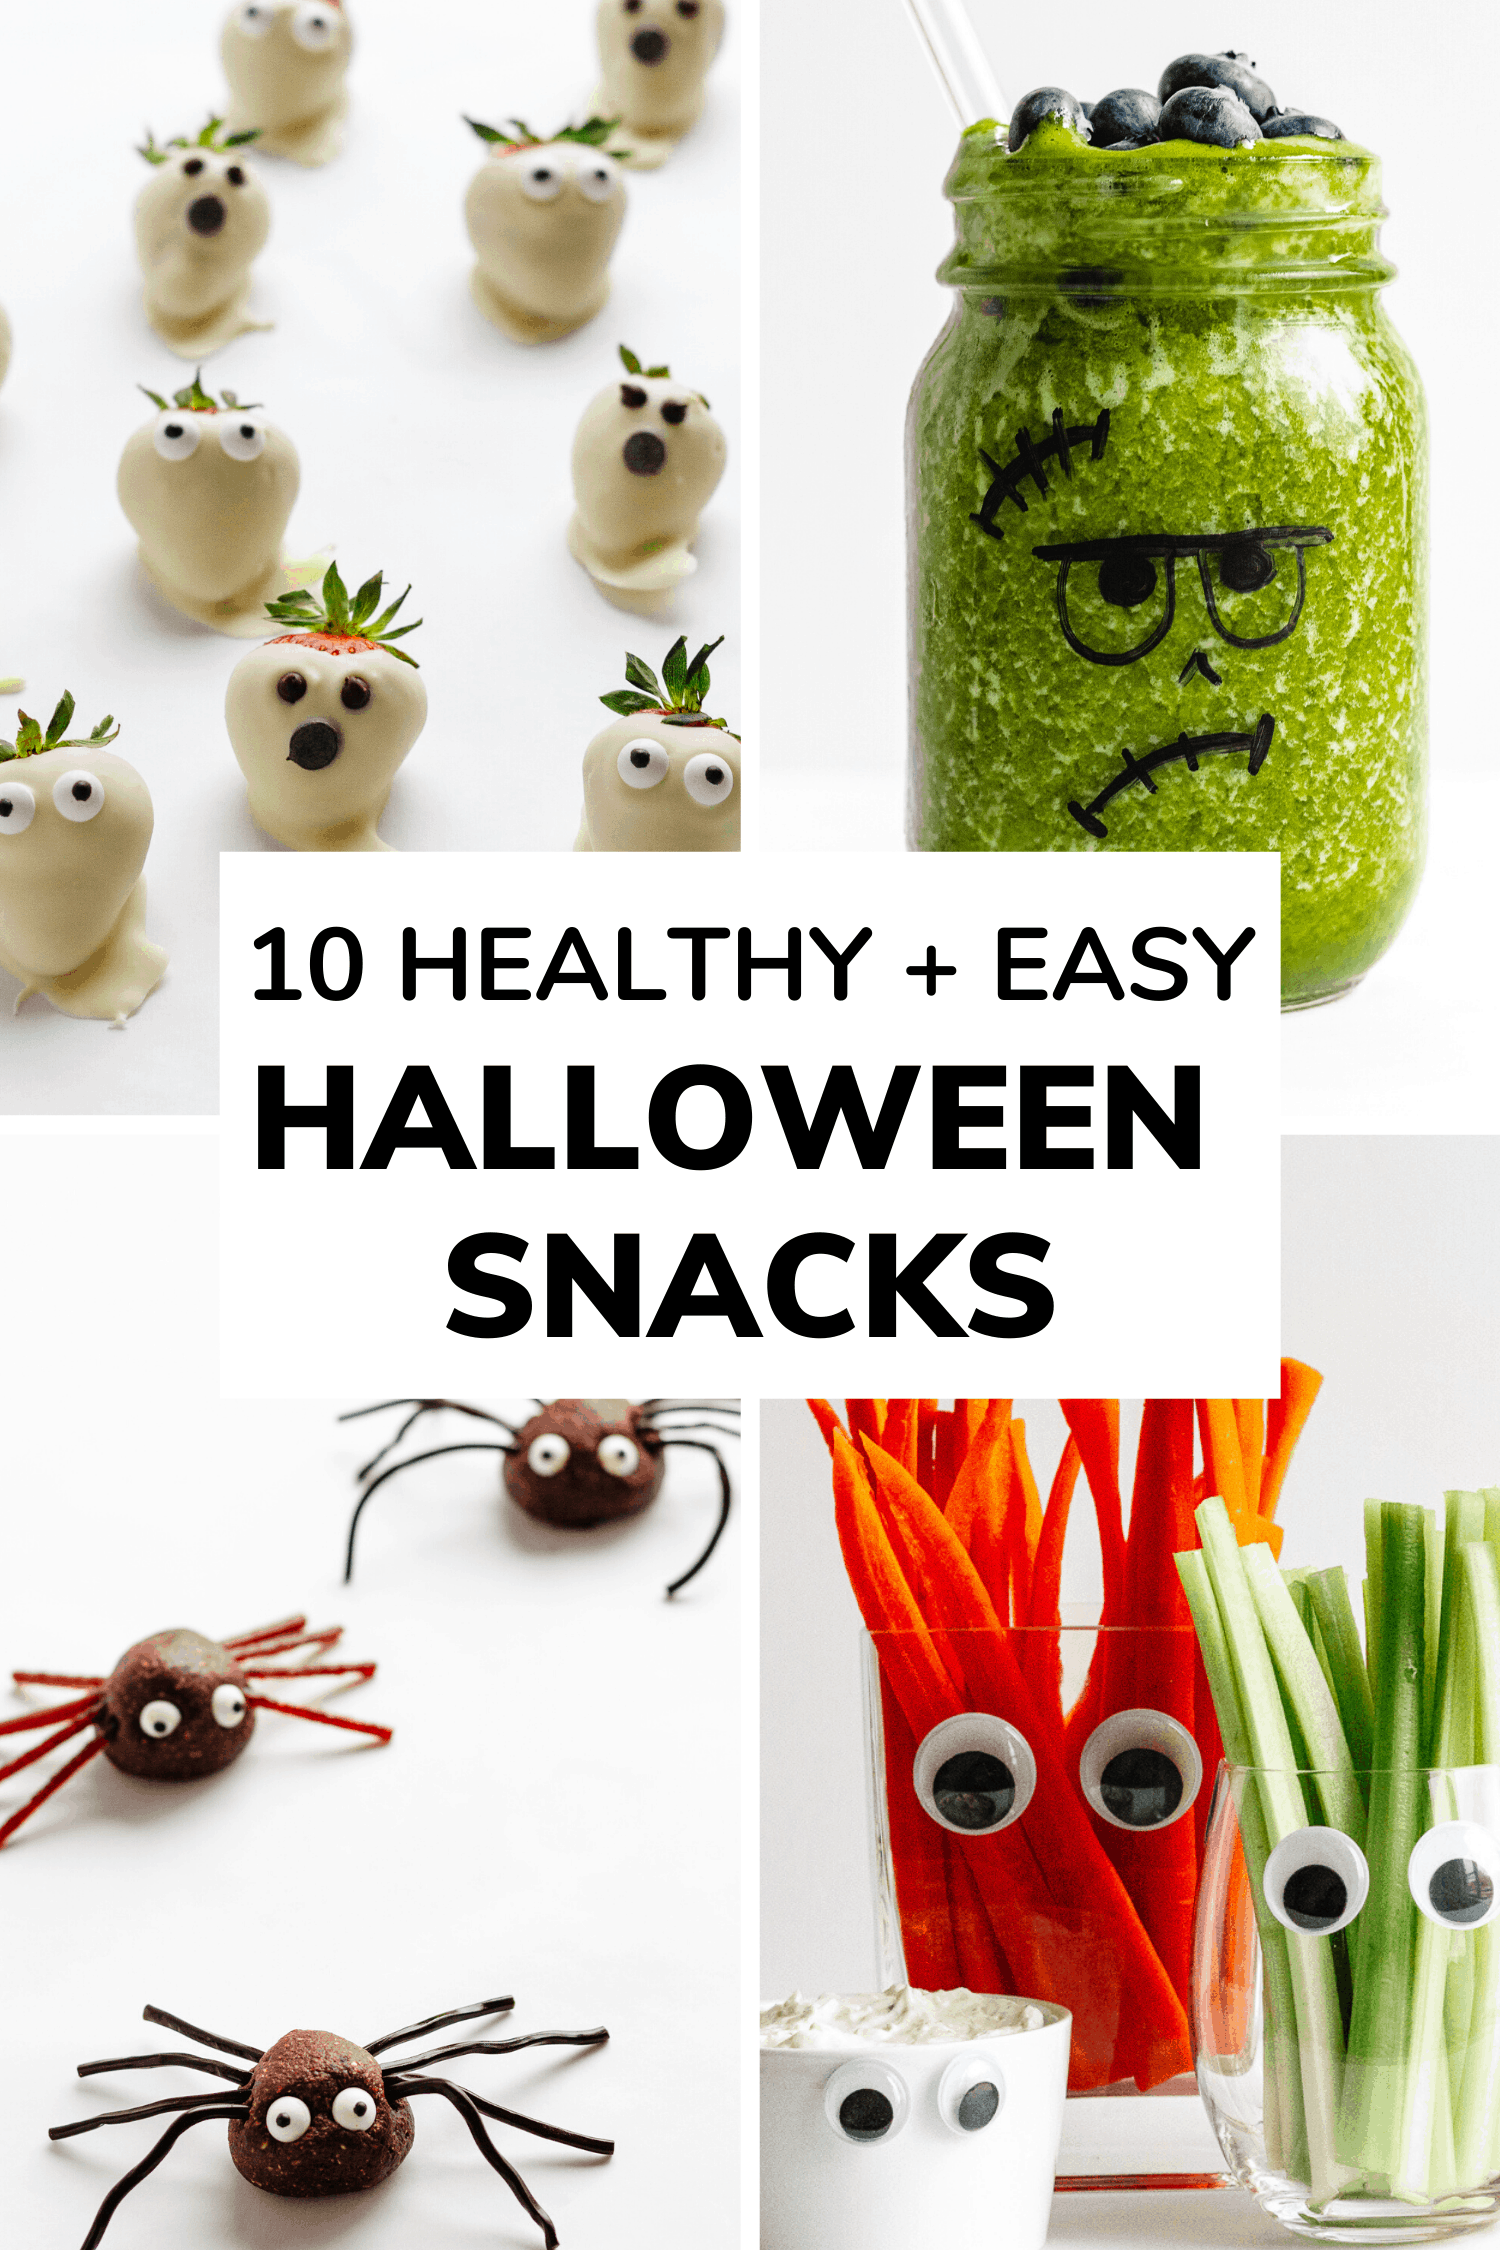 Collage showing four different images of healthy and easy halloween snack ideas.